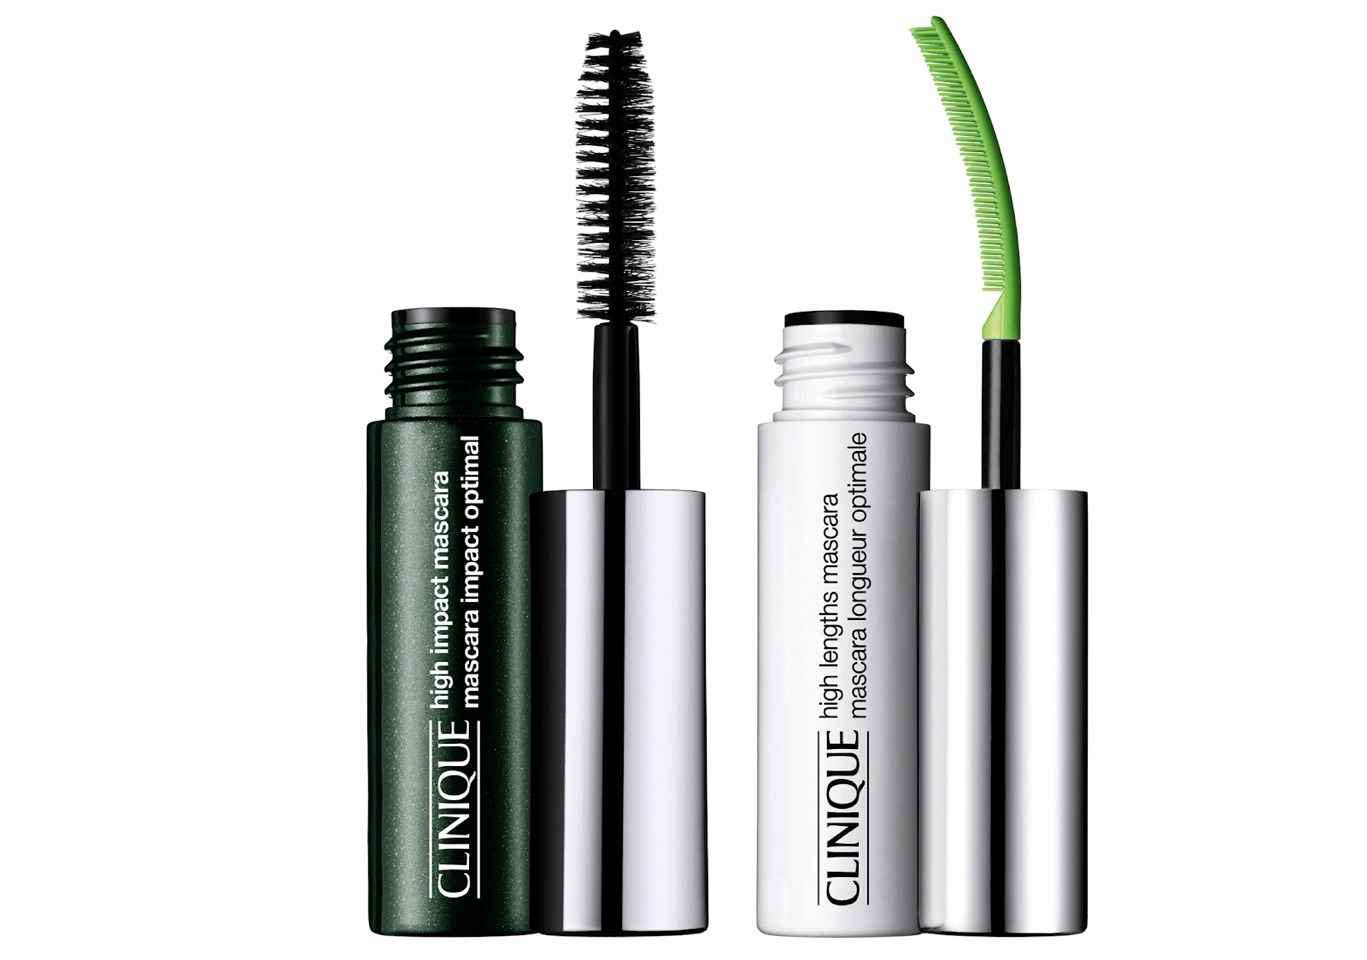 I love Clinique mascara, if makes my lashes look so much longer, and it doesn't clump!